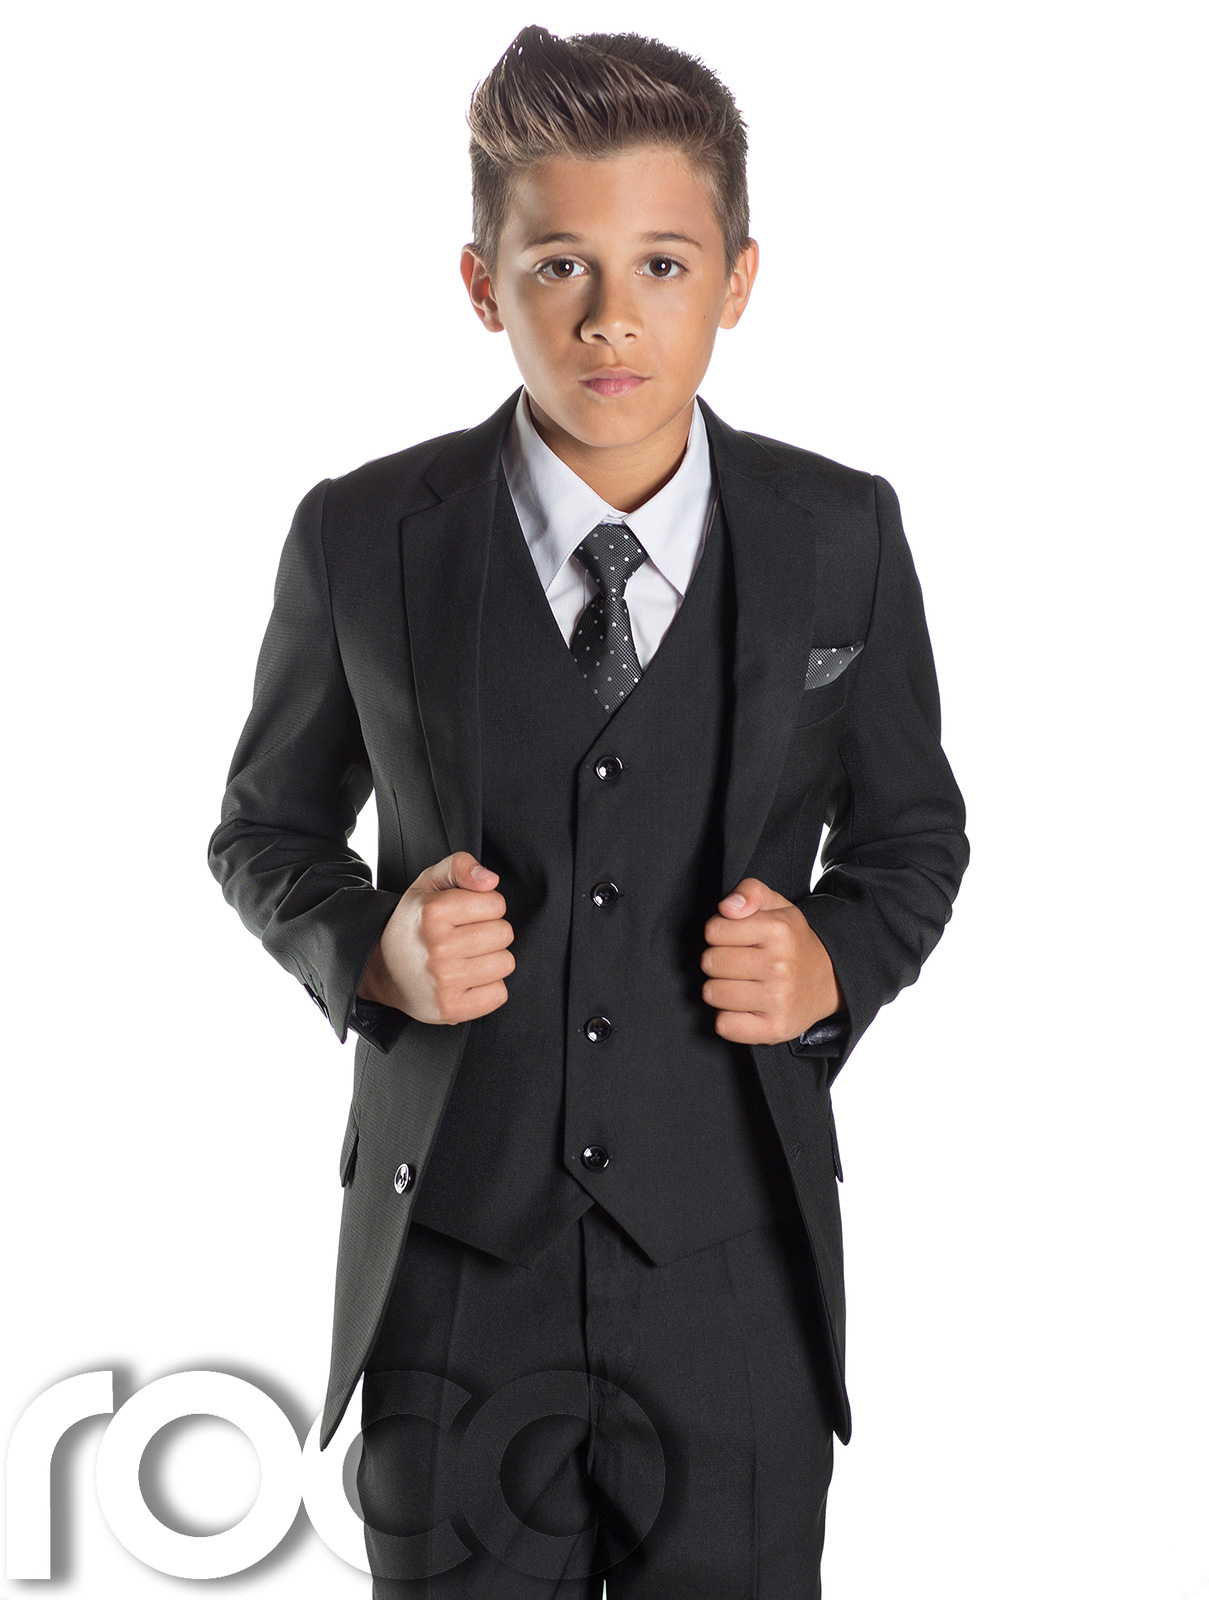 Black N Bianco Boys Tuxedos in Black with two Black Bow Ties. Sold by House Bianco. $ $ Jonathan Strong Boy's Black Tuxedo Suit Set with White Tuxedo Shirt. Sold by Sears. $ - $ Black N Bianco Ring Bearer Tuxedo for Kids in Black with a Red and Black Bow Tie.